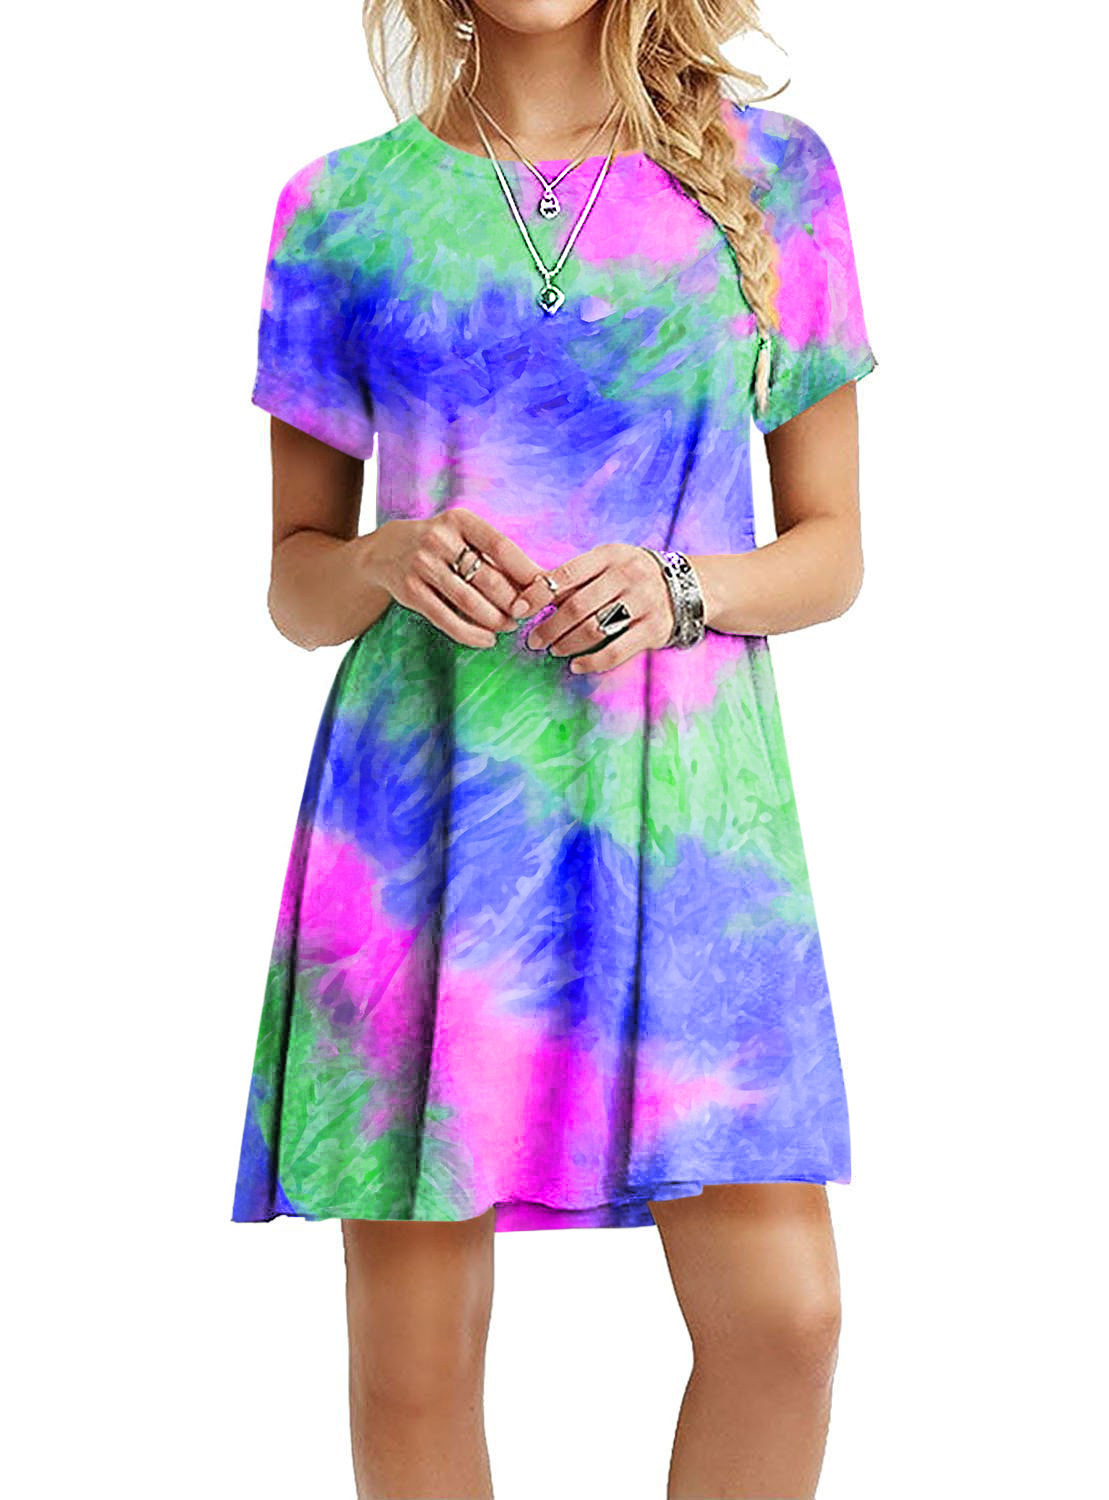 new style through slim and colorful rainbow tie-dye print dress NSYF837